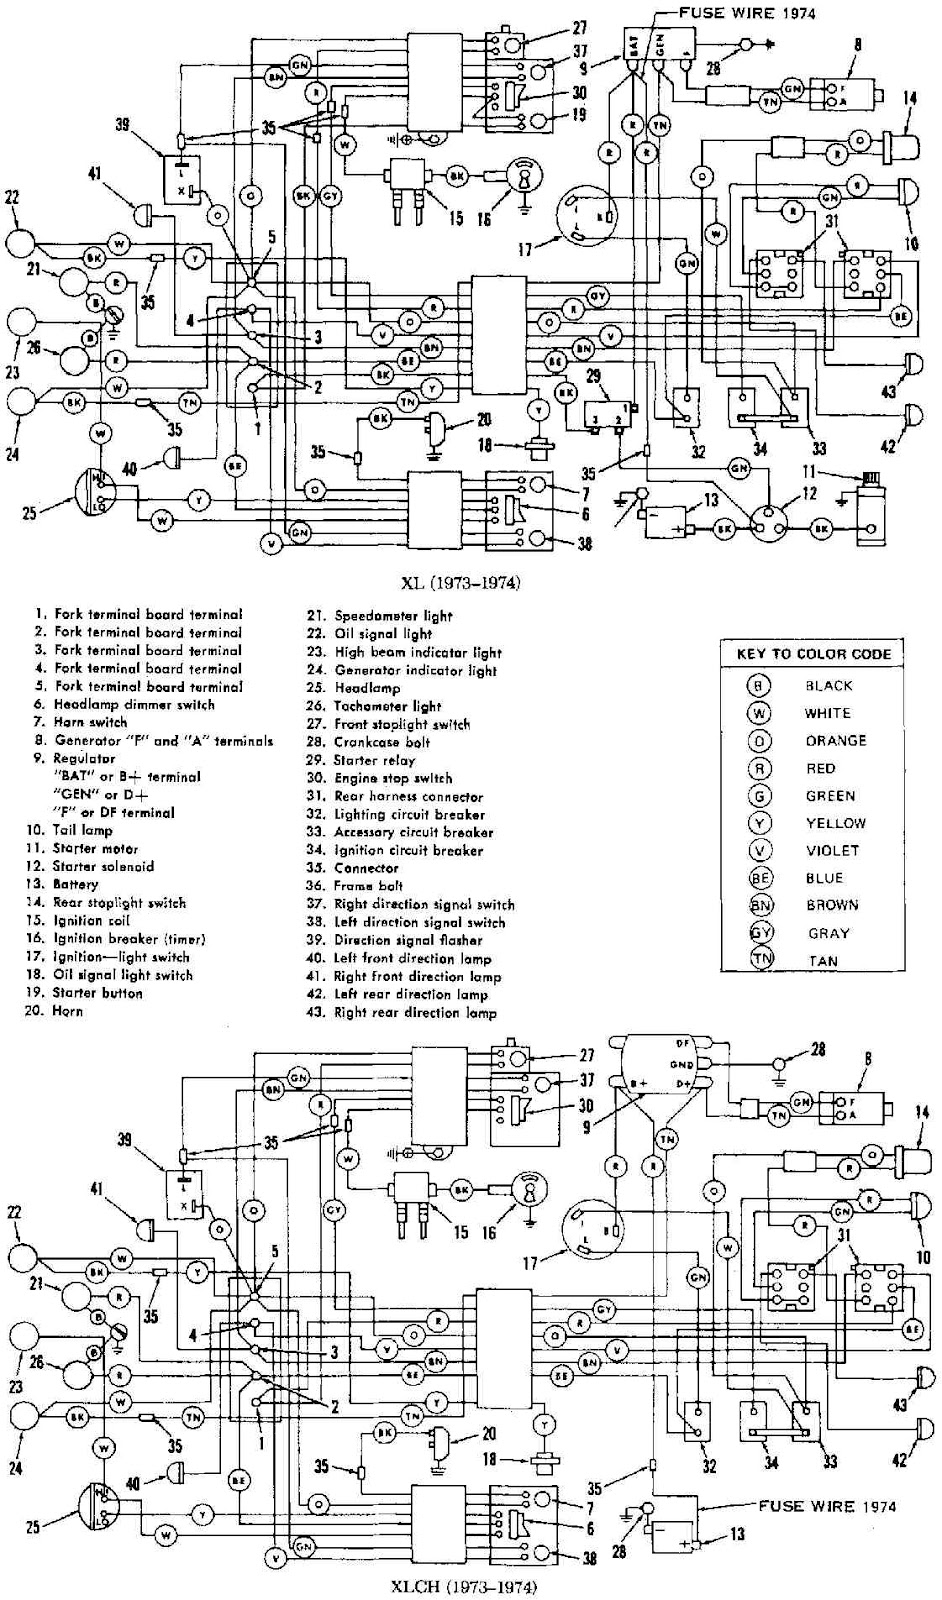 Harley Davidson Xl Xlch Motorcycle Electrical Wiring Diagram on Sportster Ignition Coil Wiring Diagram